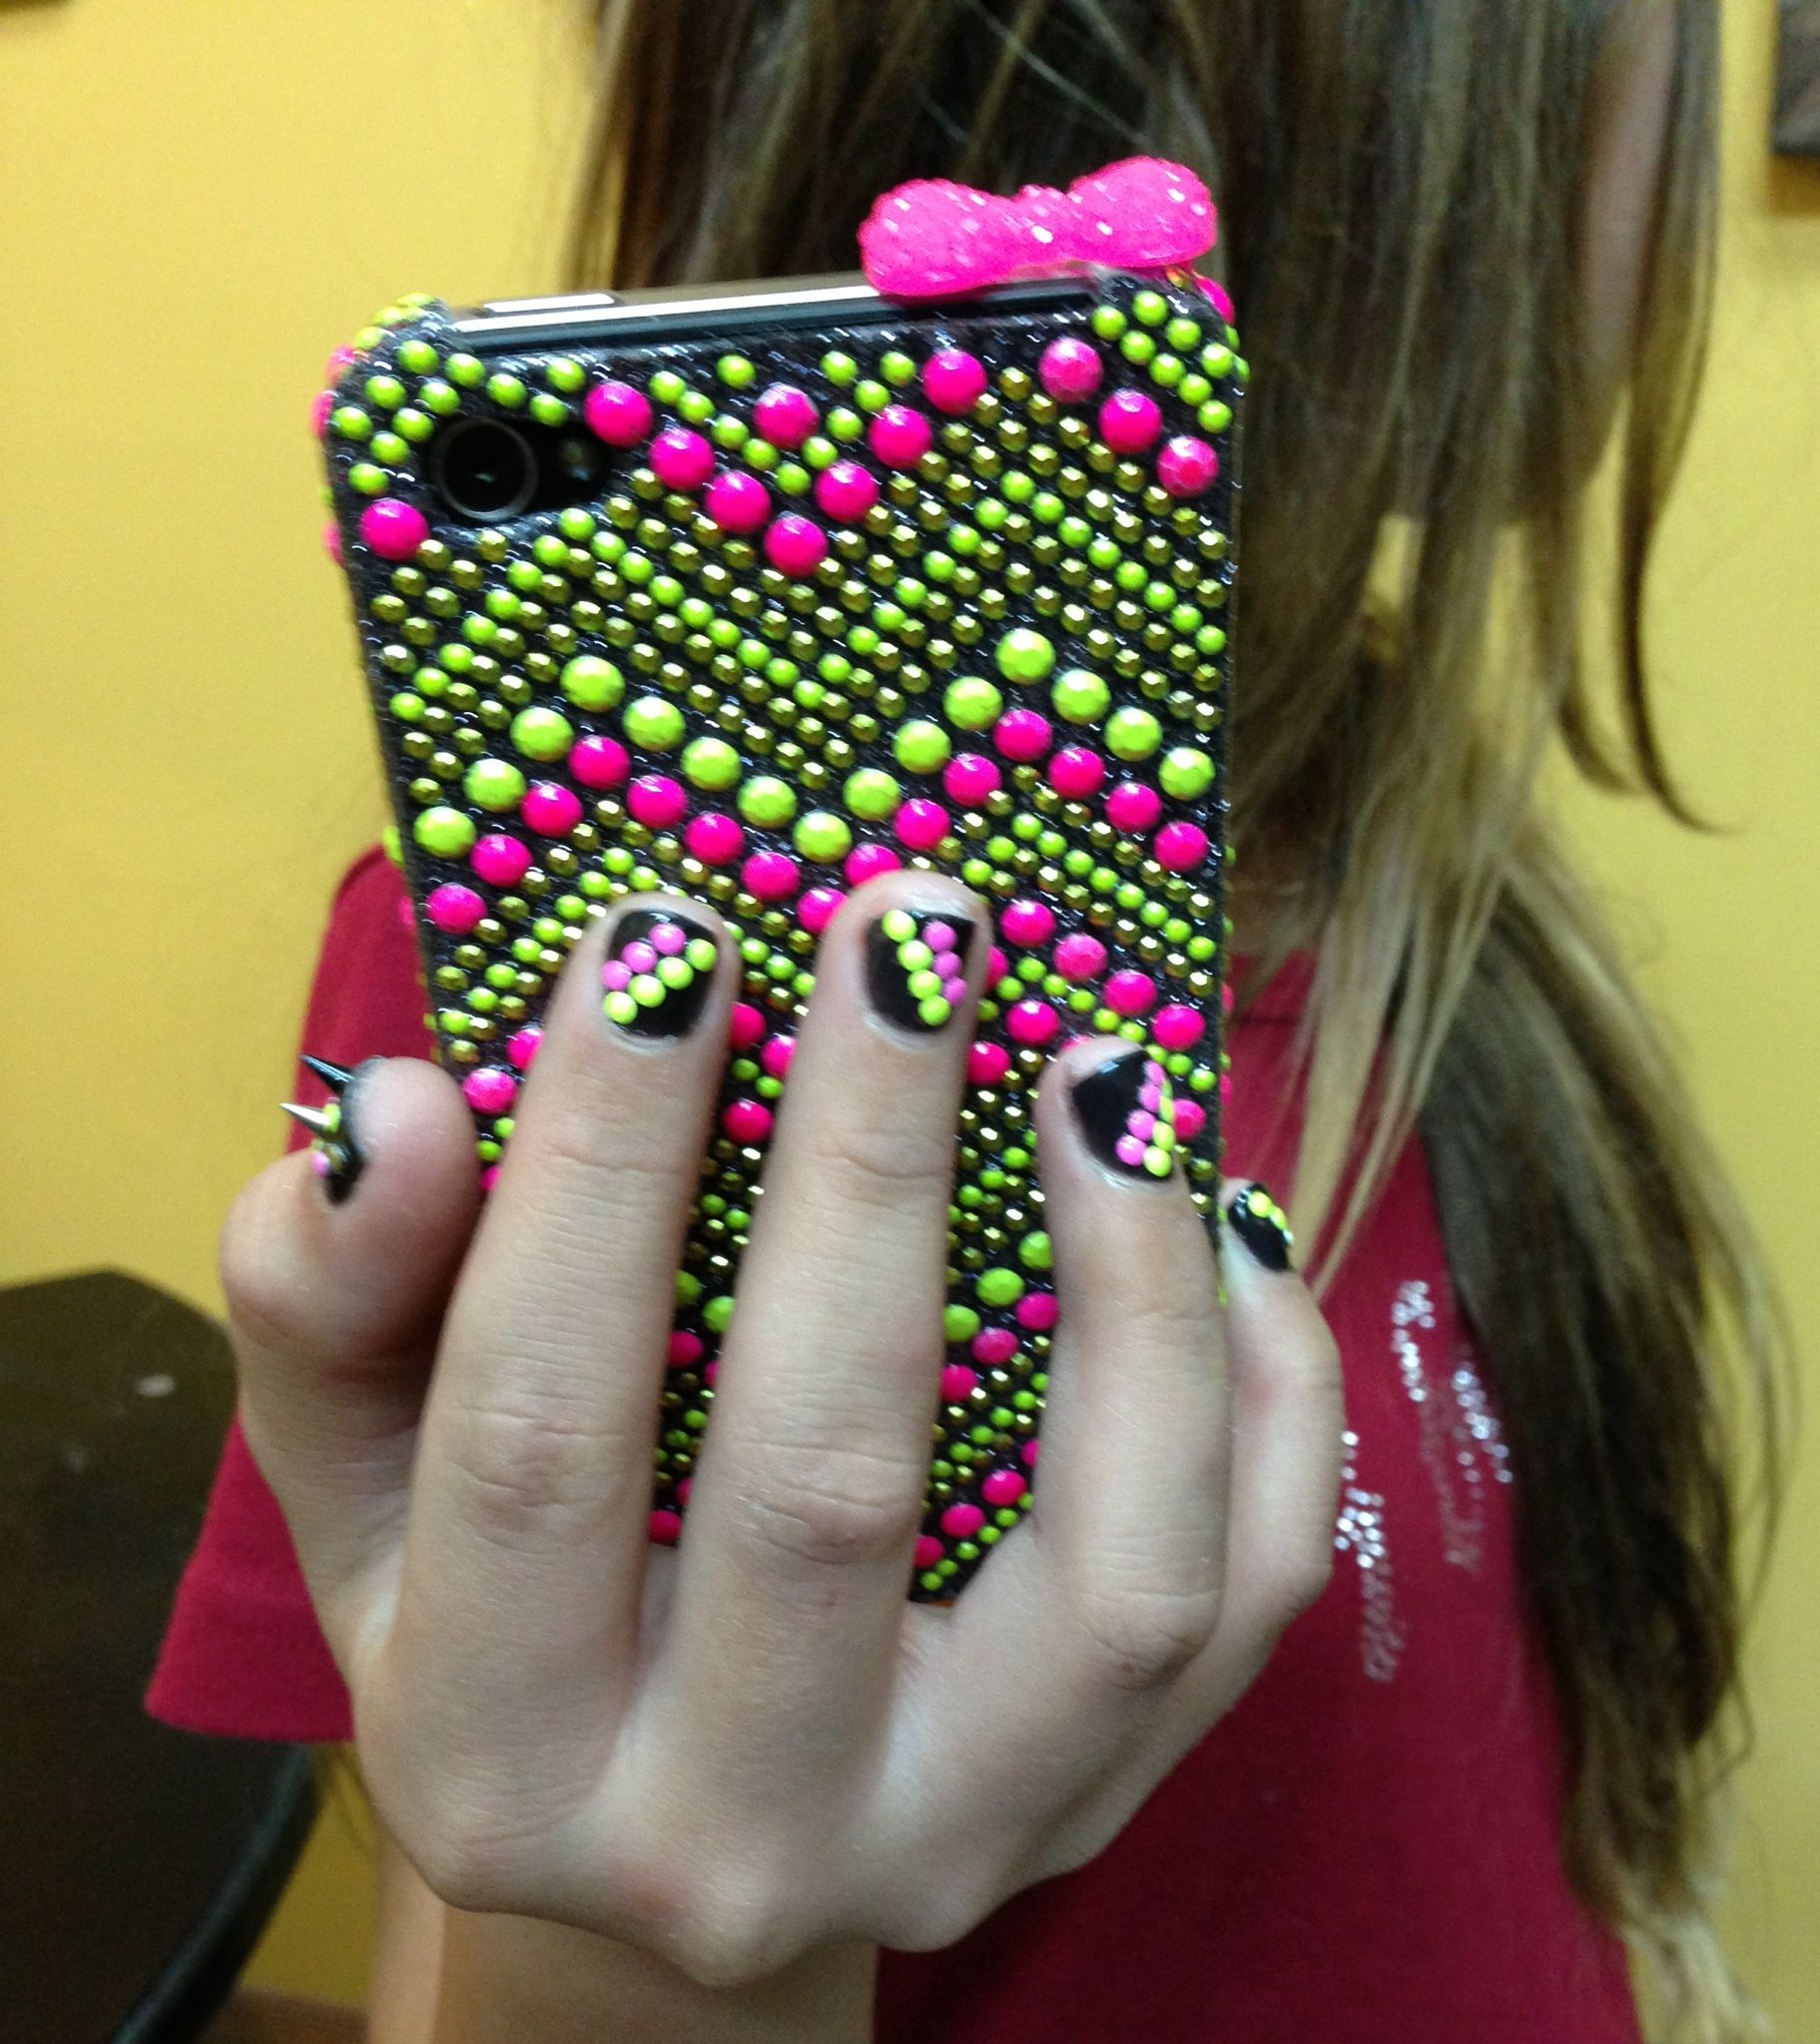 Nails matching phone case